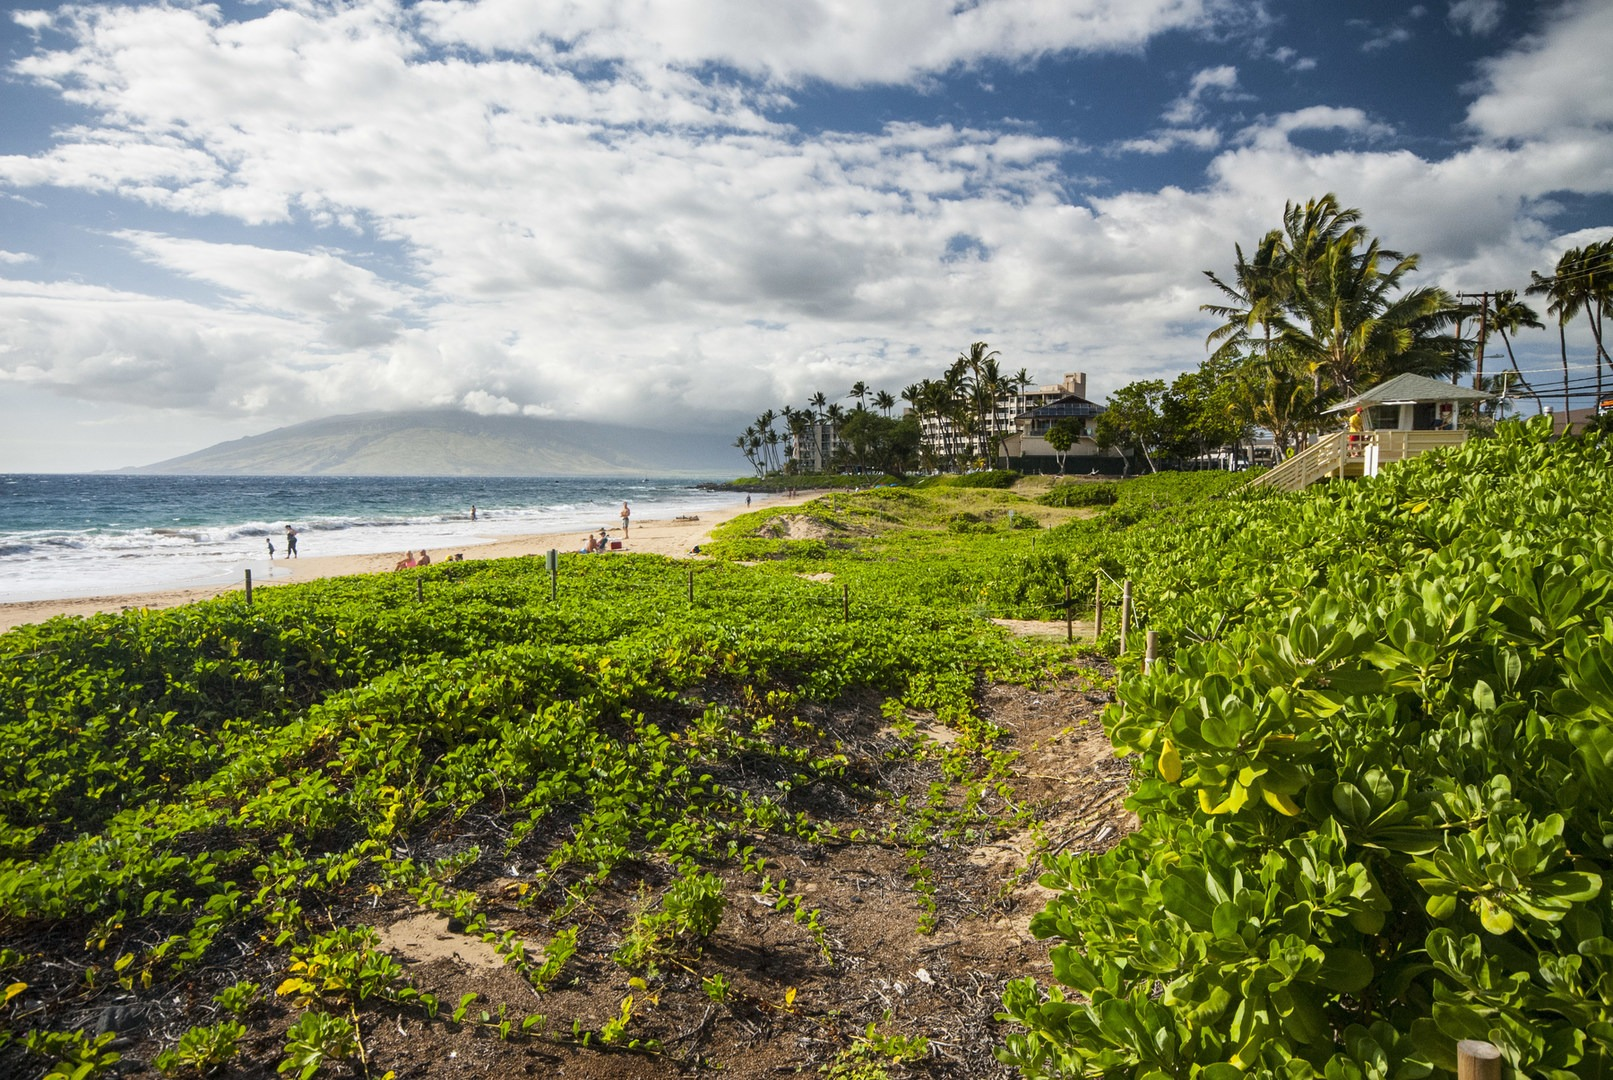 Ole View Of Beach Park 2 With The West Maui Mountains In Distance